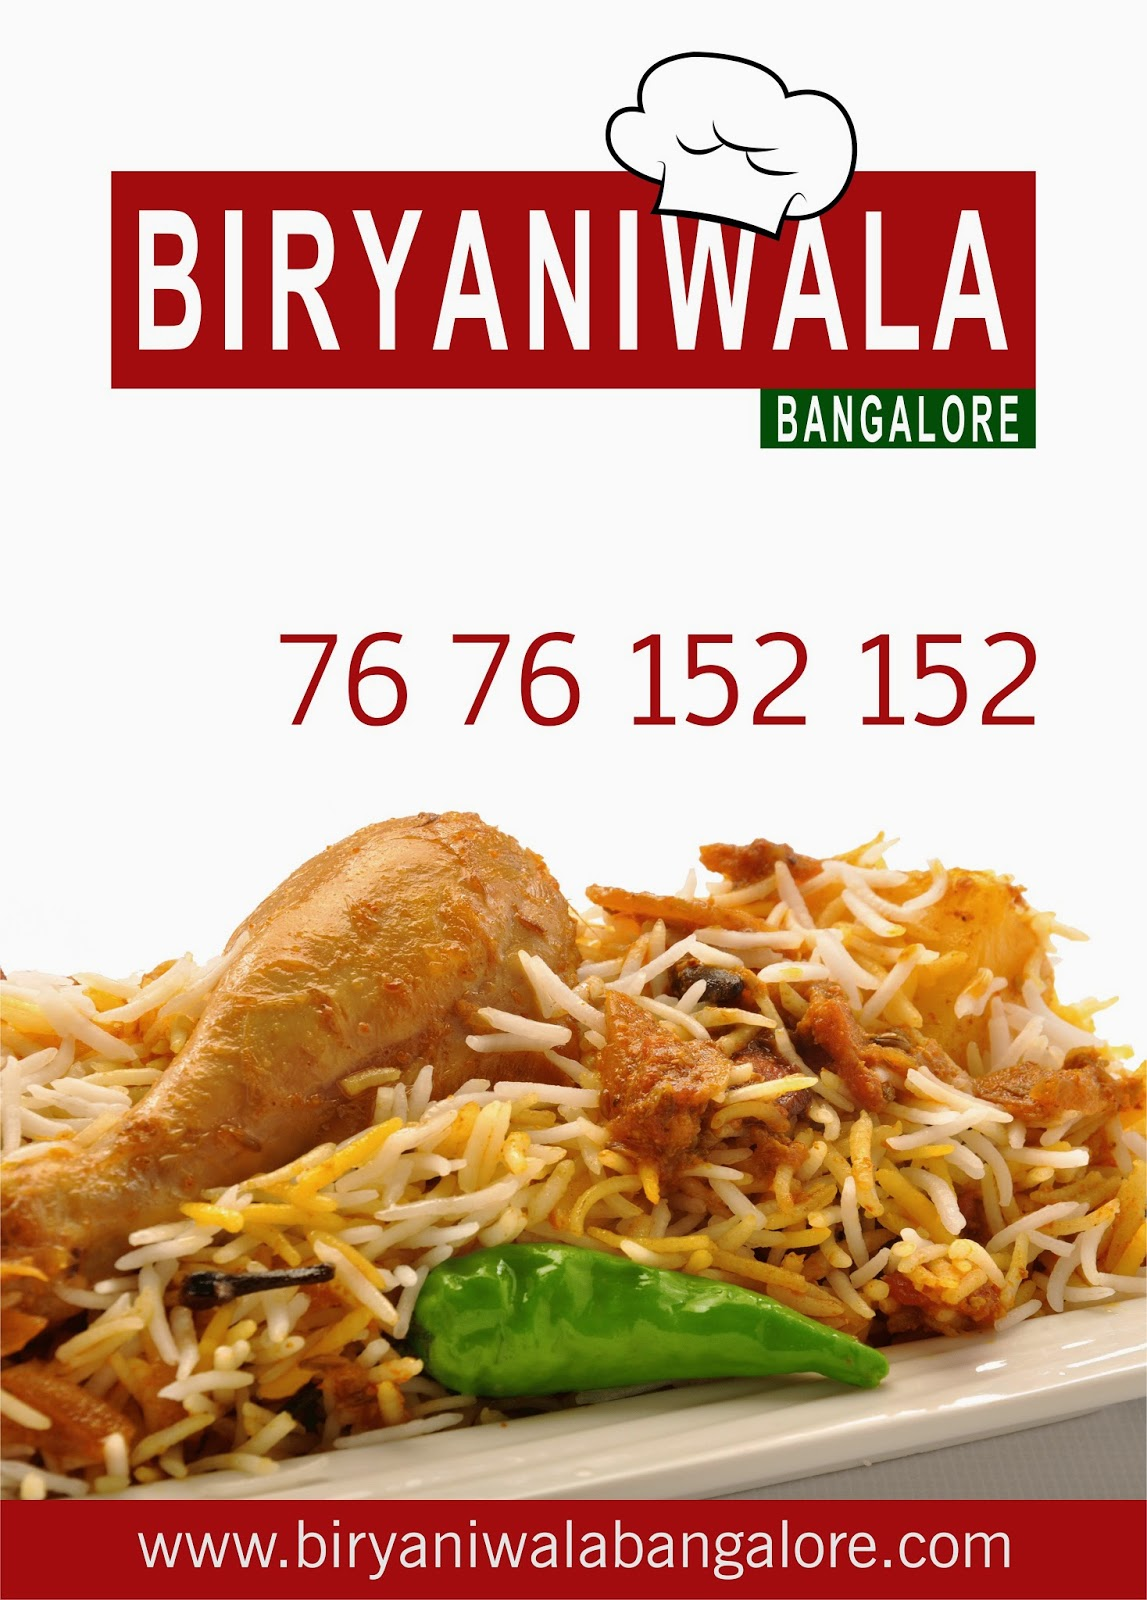 They Wanted To Make Biryaniwala A Home Delivery Concept The Talk Of The Town They Believed That The Humble Biryani Could Stand Tall Among The Biryani S